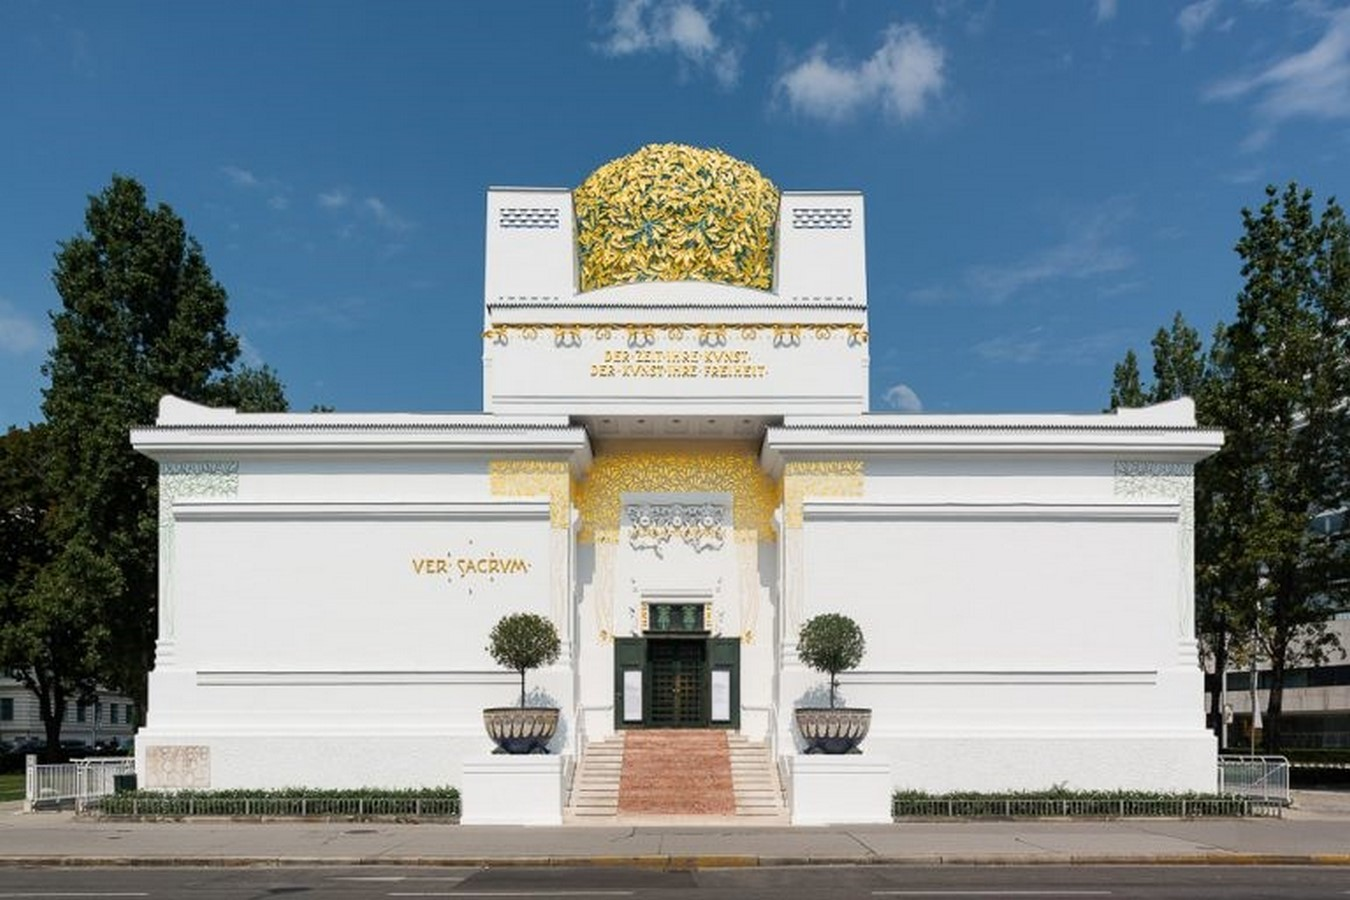 Secession Building by Joseph Maria Olbrich: Painting, Sculpture, and Architecture - Sheet1